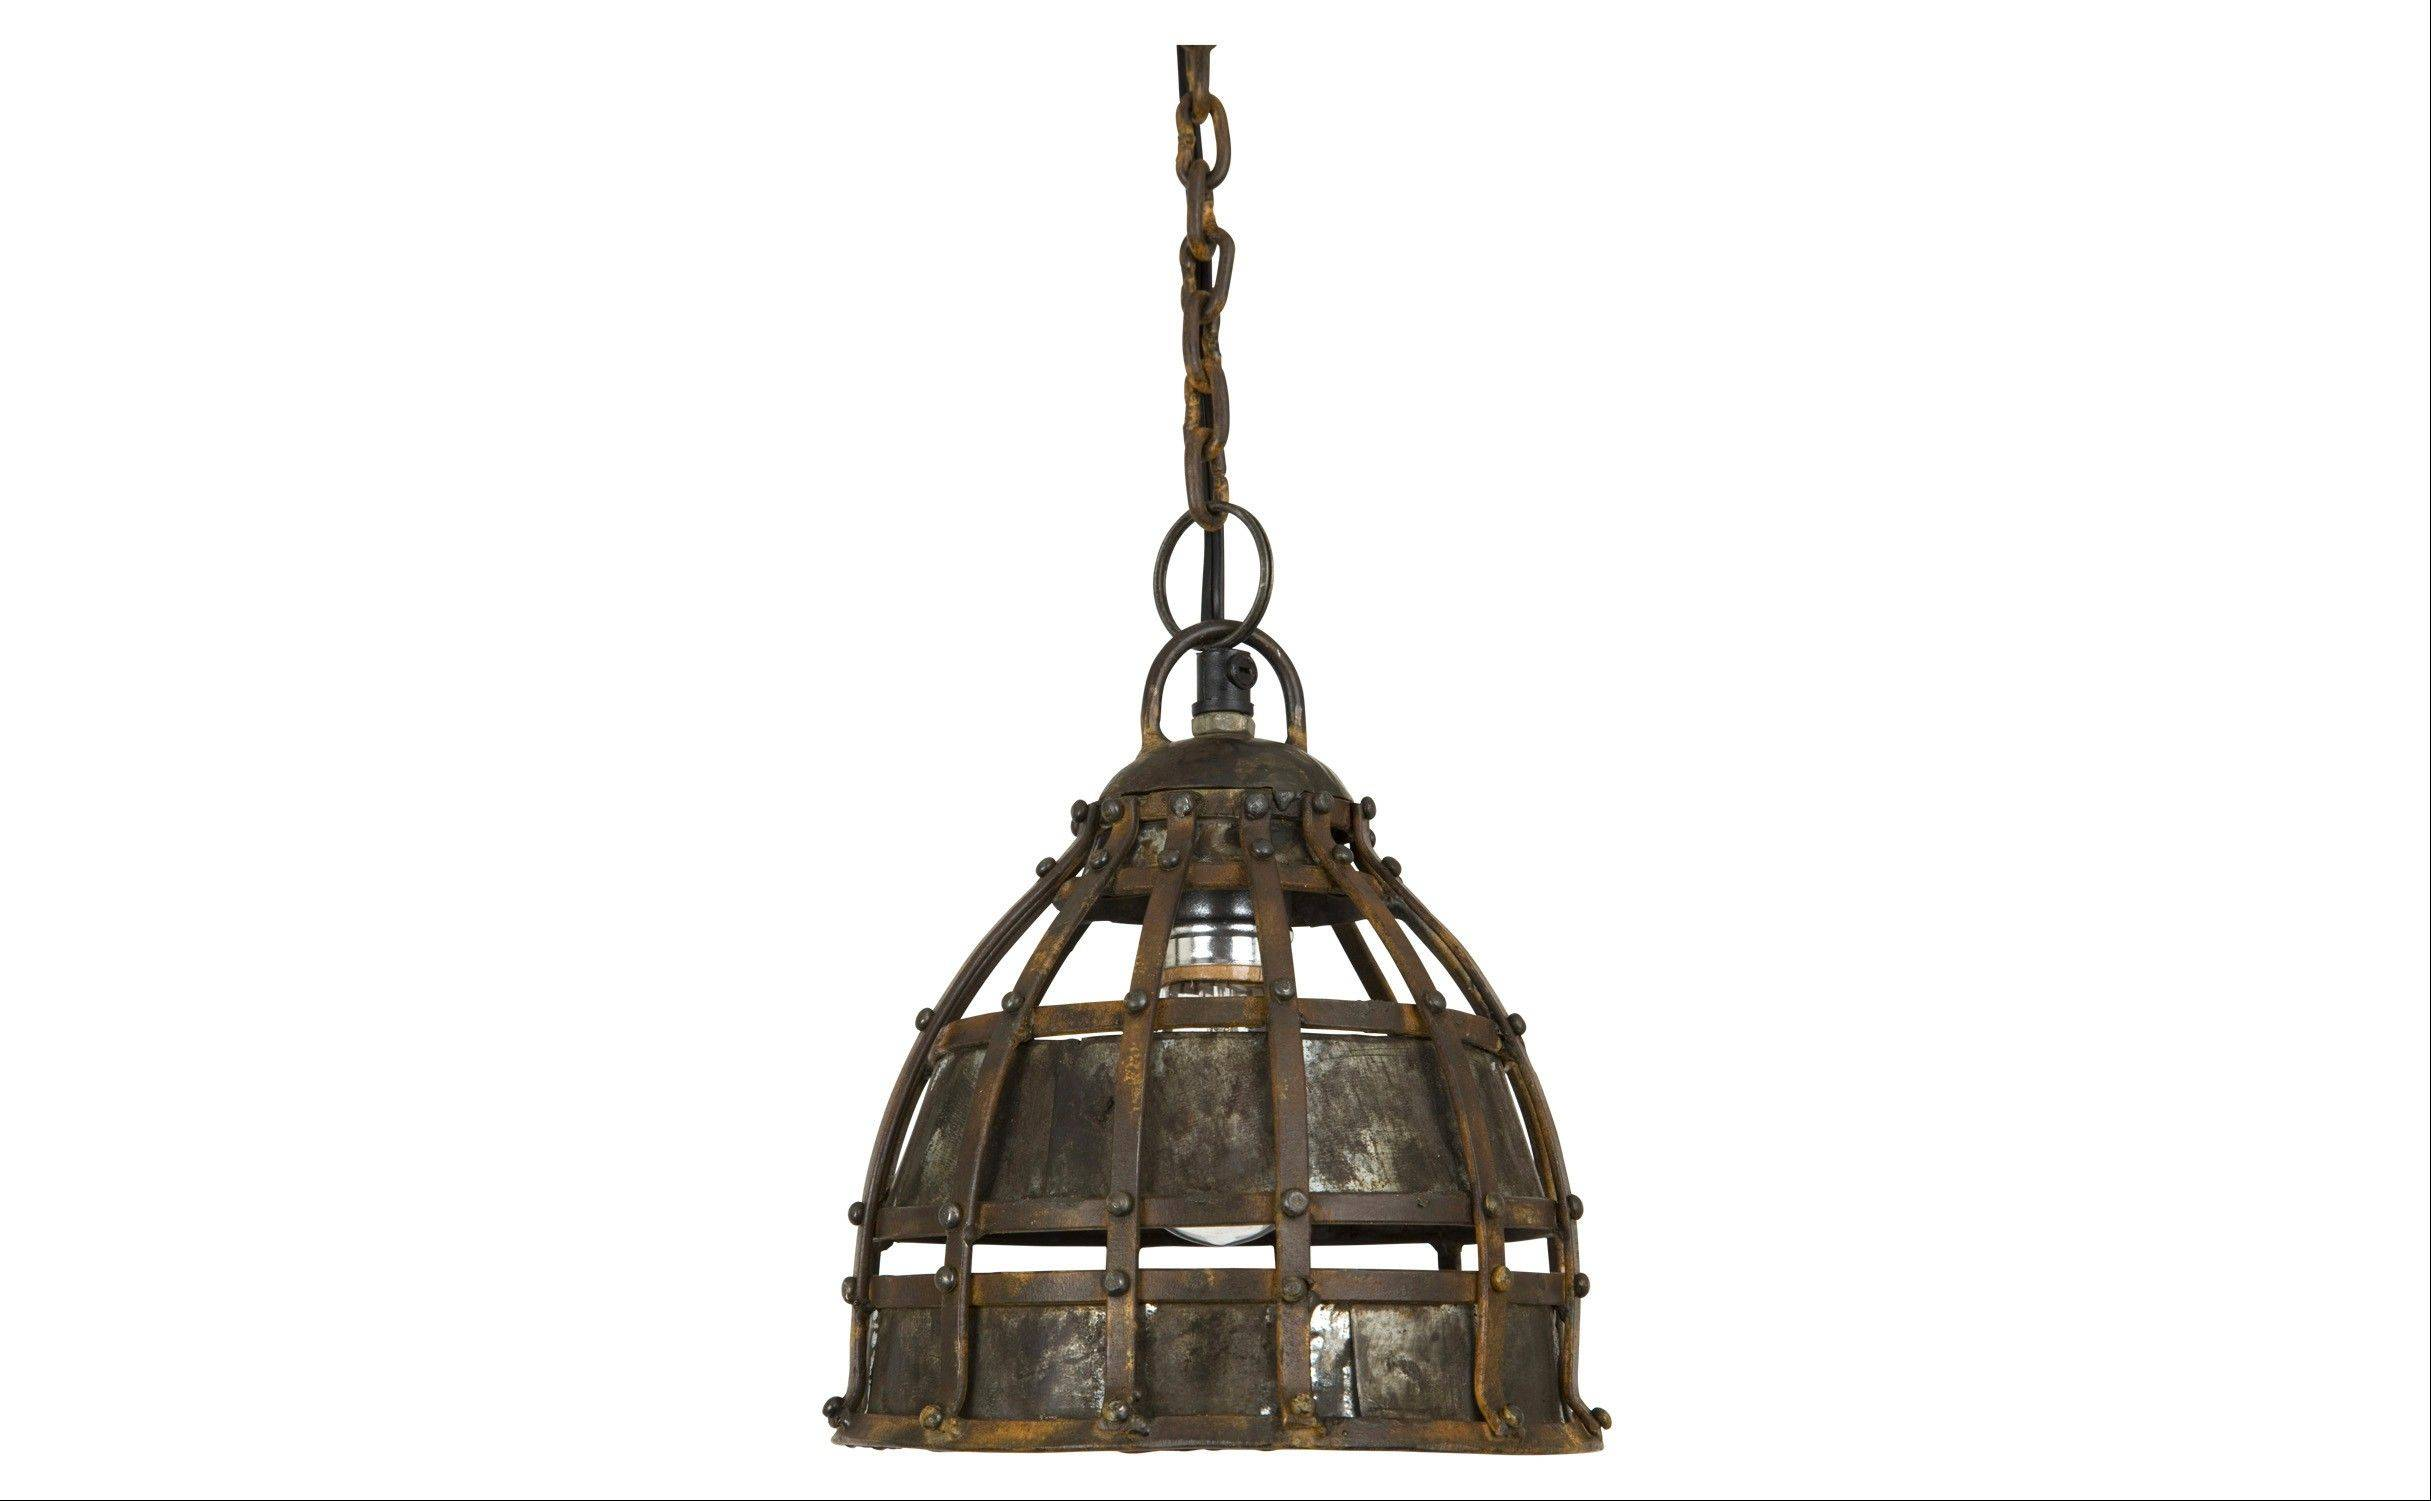 The Ludlam pendant lamp, with its cage of riveted metal that gives the lighting fixture an industrial look.